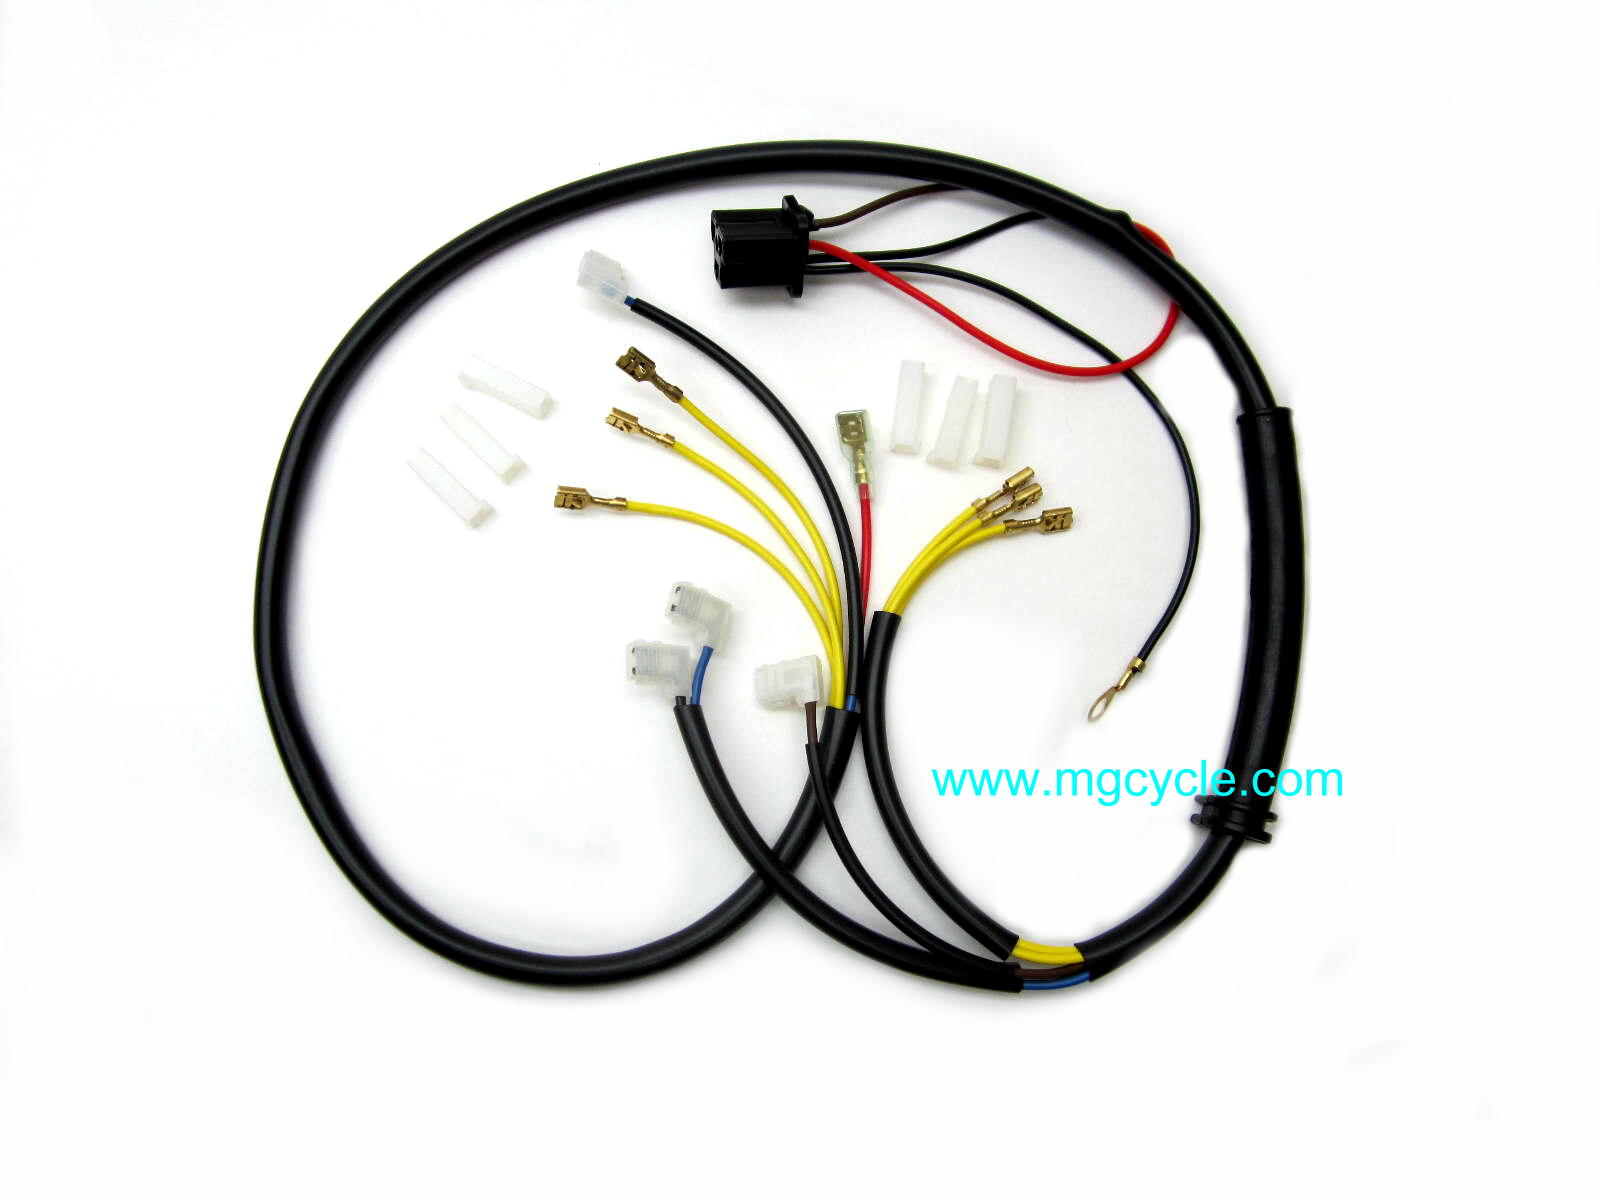 17747150 10791 Main Wire Harness For 850t3 Convert G5 Mg Alternator Wiring V1000 I